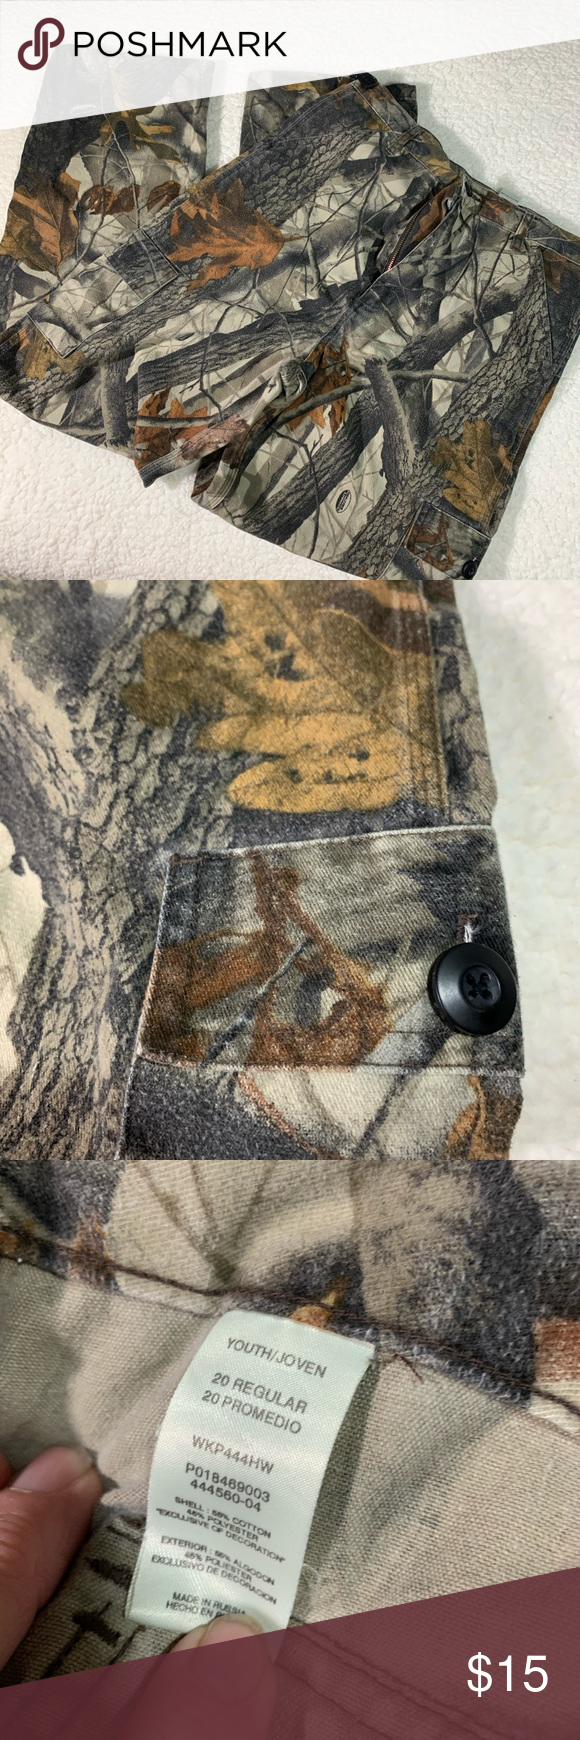 Liberty camp jeans size 20  T1192 Perfect for the season tag says youth 20 but need to use measurements also very clean no rips this one sat in the deer stand not out in the pasture . Pockets on legs with buttons.  Has a stretch band on sides  Waist 16 in Length 42 in Inseam 30 in Ankle width 9in Rise 13 in  Thank you for shopping my closet 👡👚👗❤️❤️👢🧳🧢🥾 (all measurements  taken laying flat)and are approximately  All items are from a smoke free 🔥and pet free 🐶🐱home have a great week. Pl